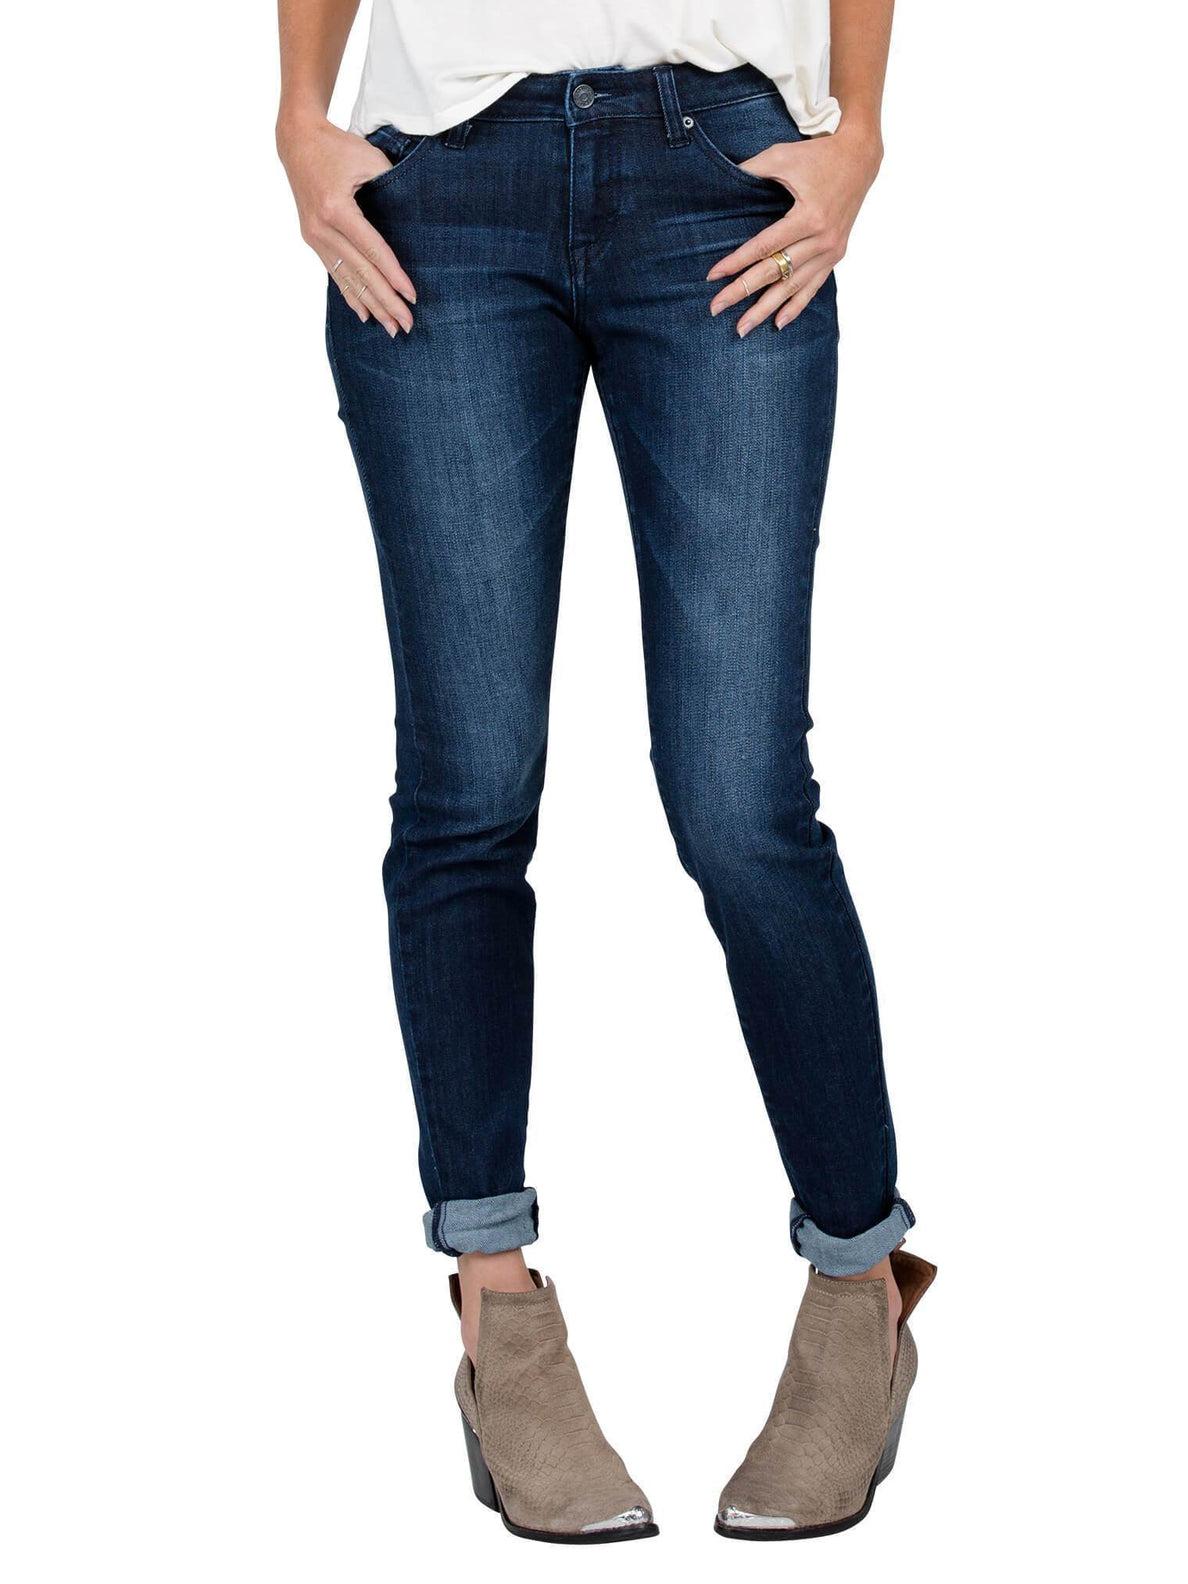 Jeans Super Stoned Skinny - Double Down Indigo